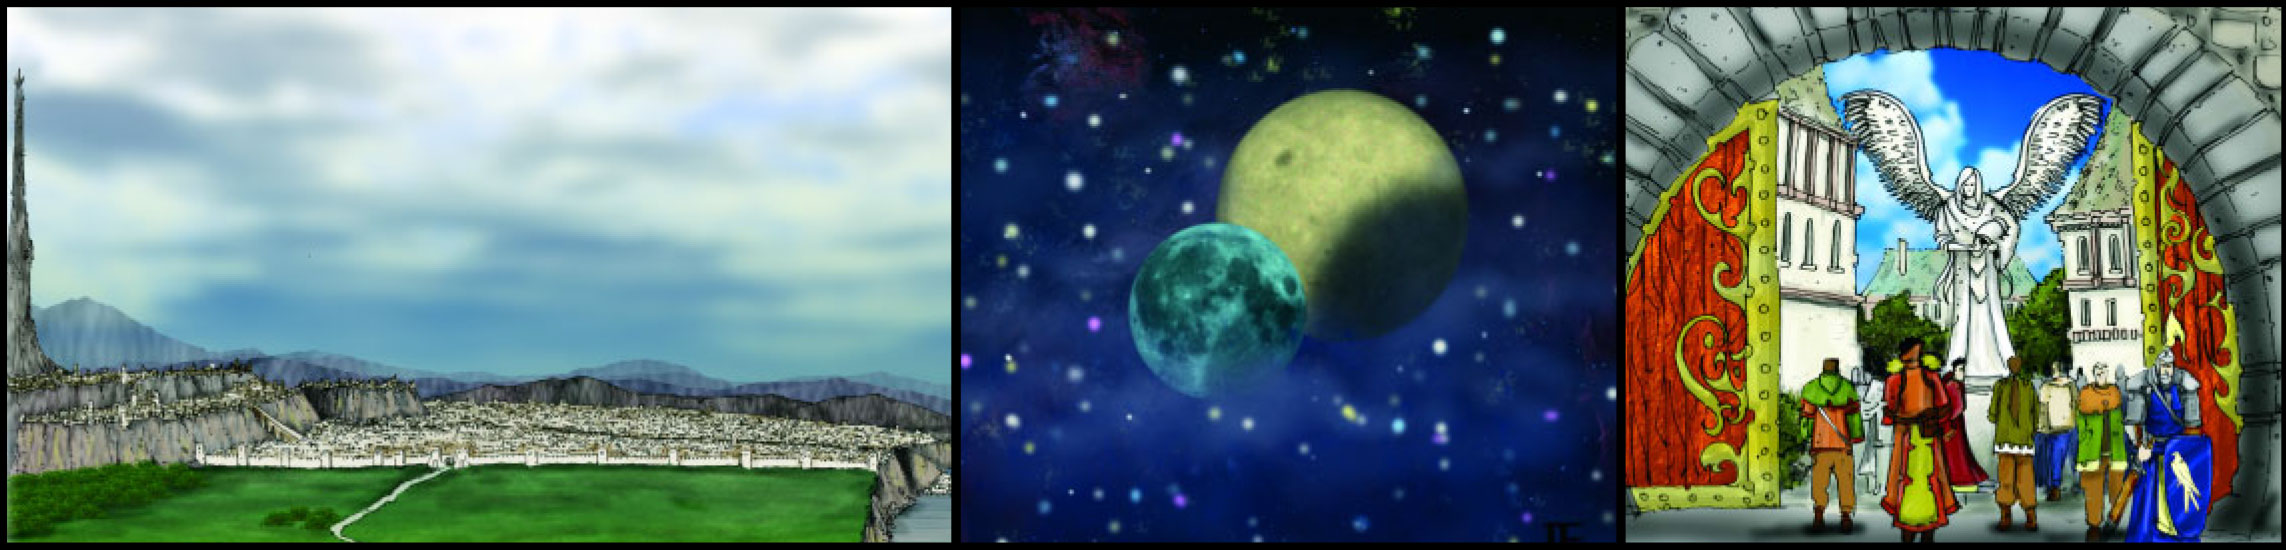 Chapter 2 The World of Pramael with Ptolus City by the Spire Side View and Vallis Moon